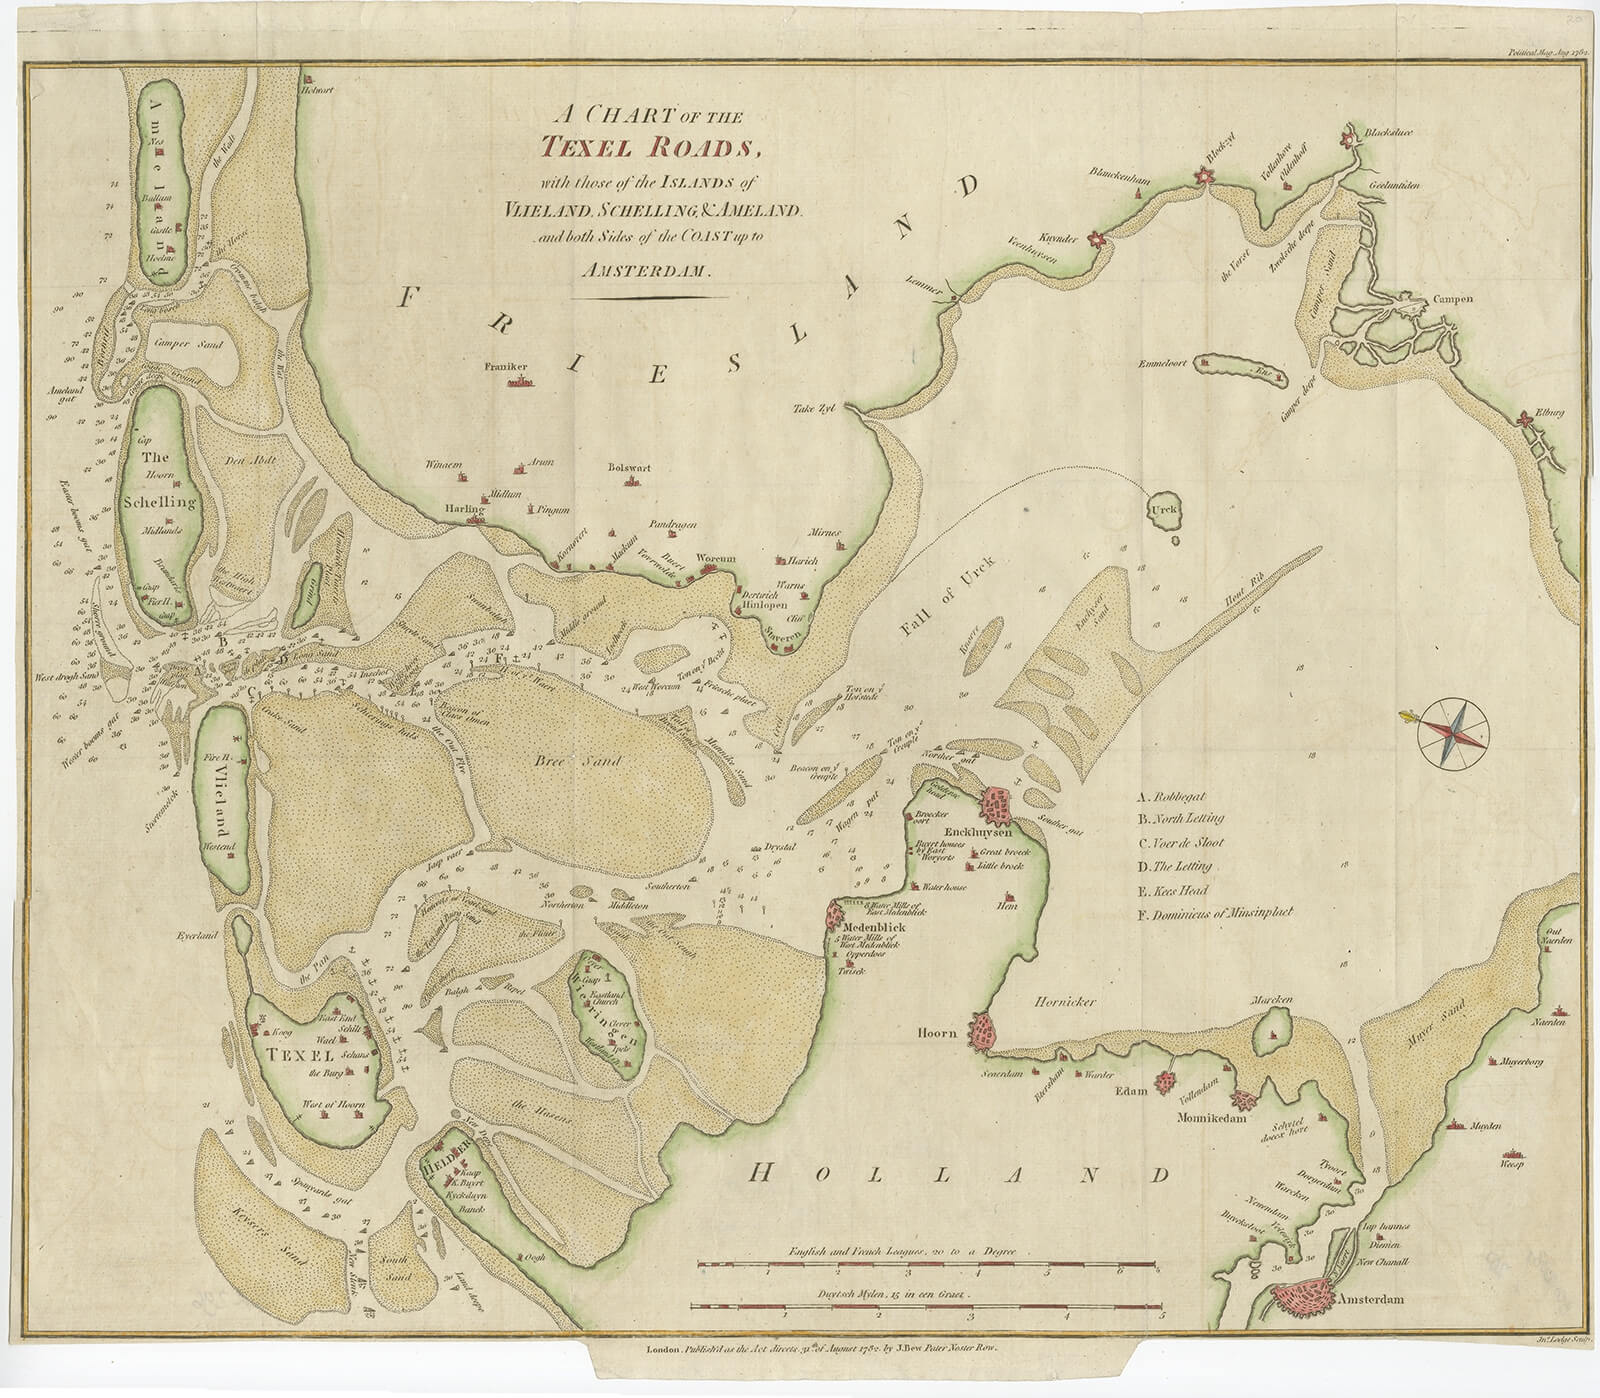 a-chart-of-the-texel-roads-bew-1782